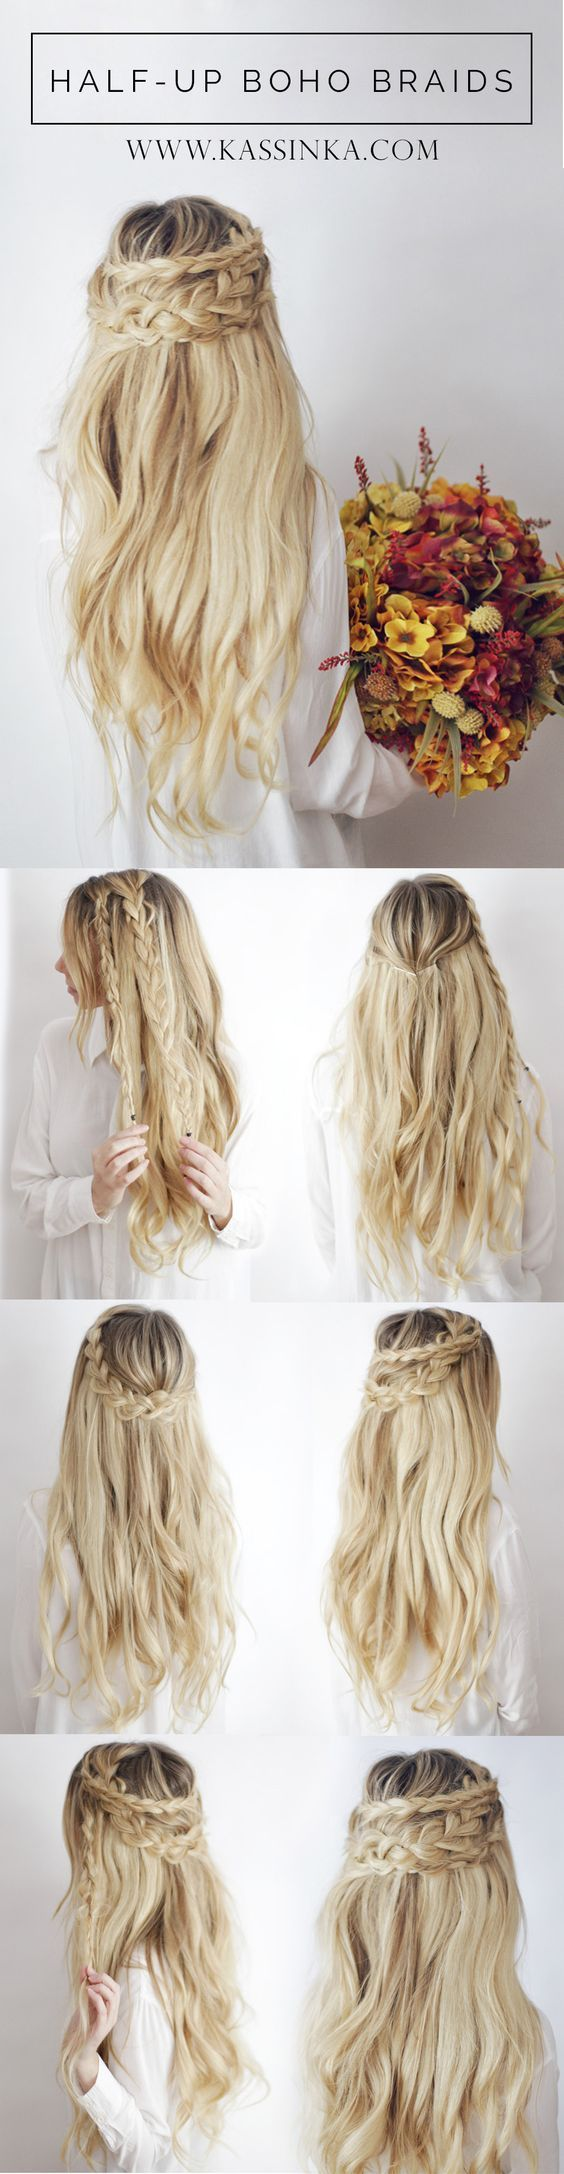 Super Easy DIY Braided Hairstyles for Wedding Tutorials | Easy ...